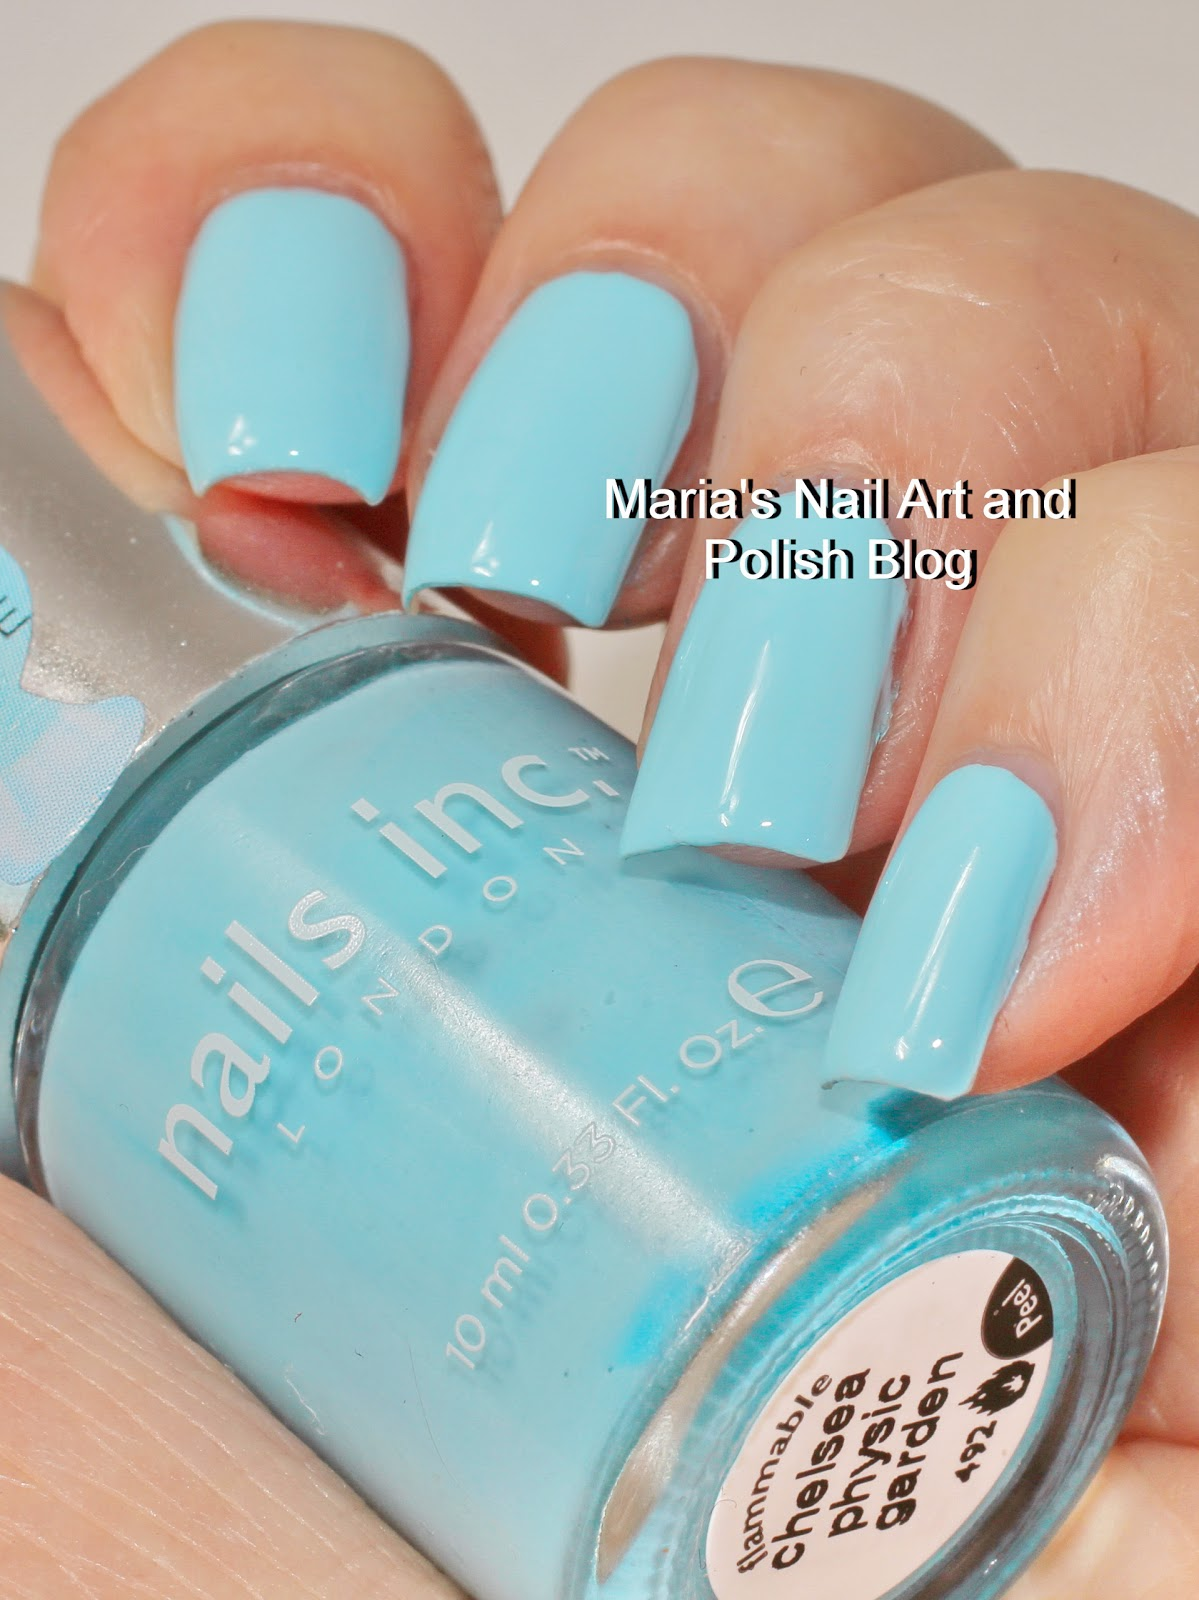 Marias nail art and polish blog nails inc chelsea physic garden nails inc chelsea physic garden springsummer 2013 is an adorable baby blue cream it is well pigmented and easy to work with and you see it in two easy prinsesfo Image collections